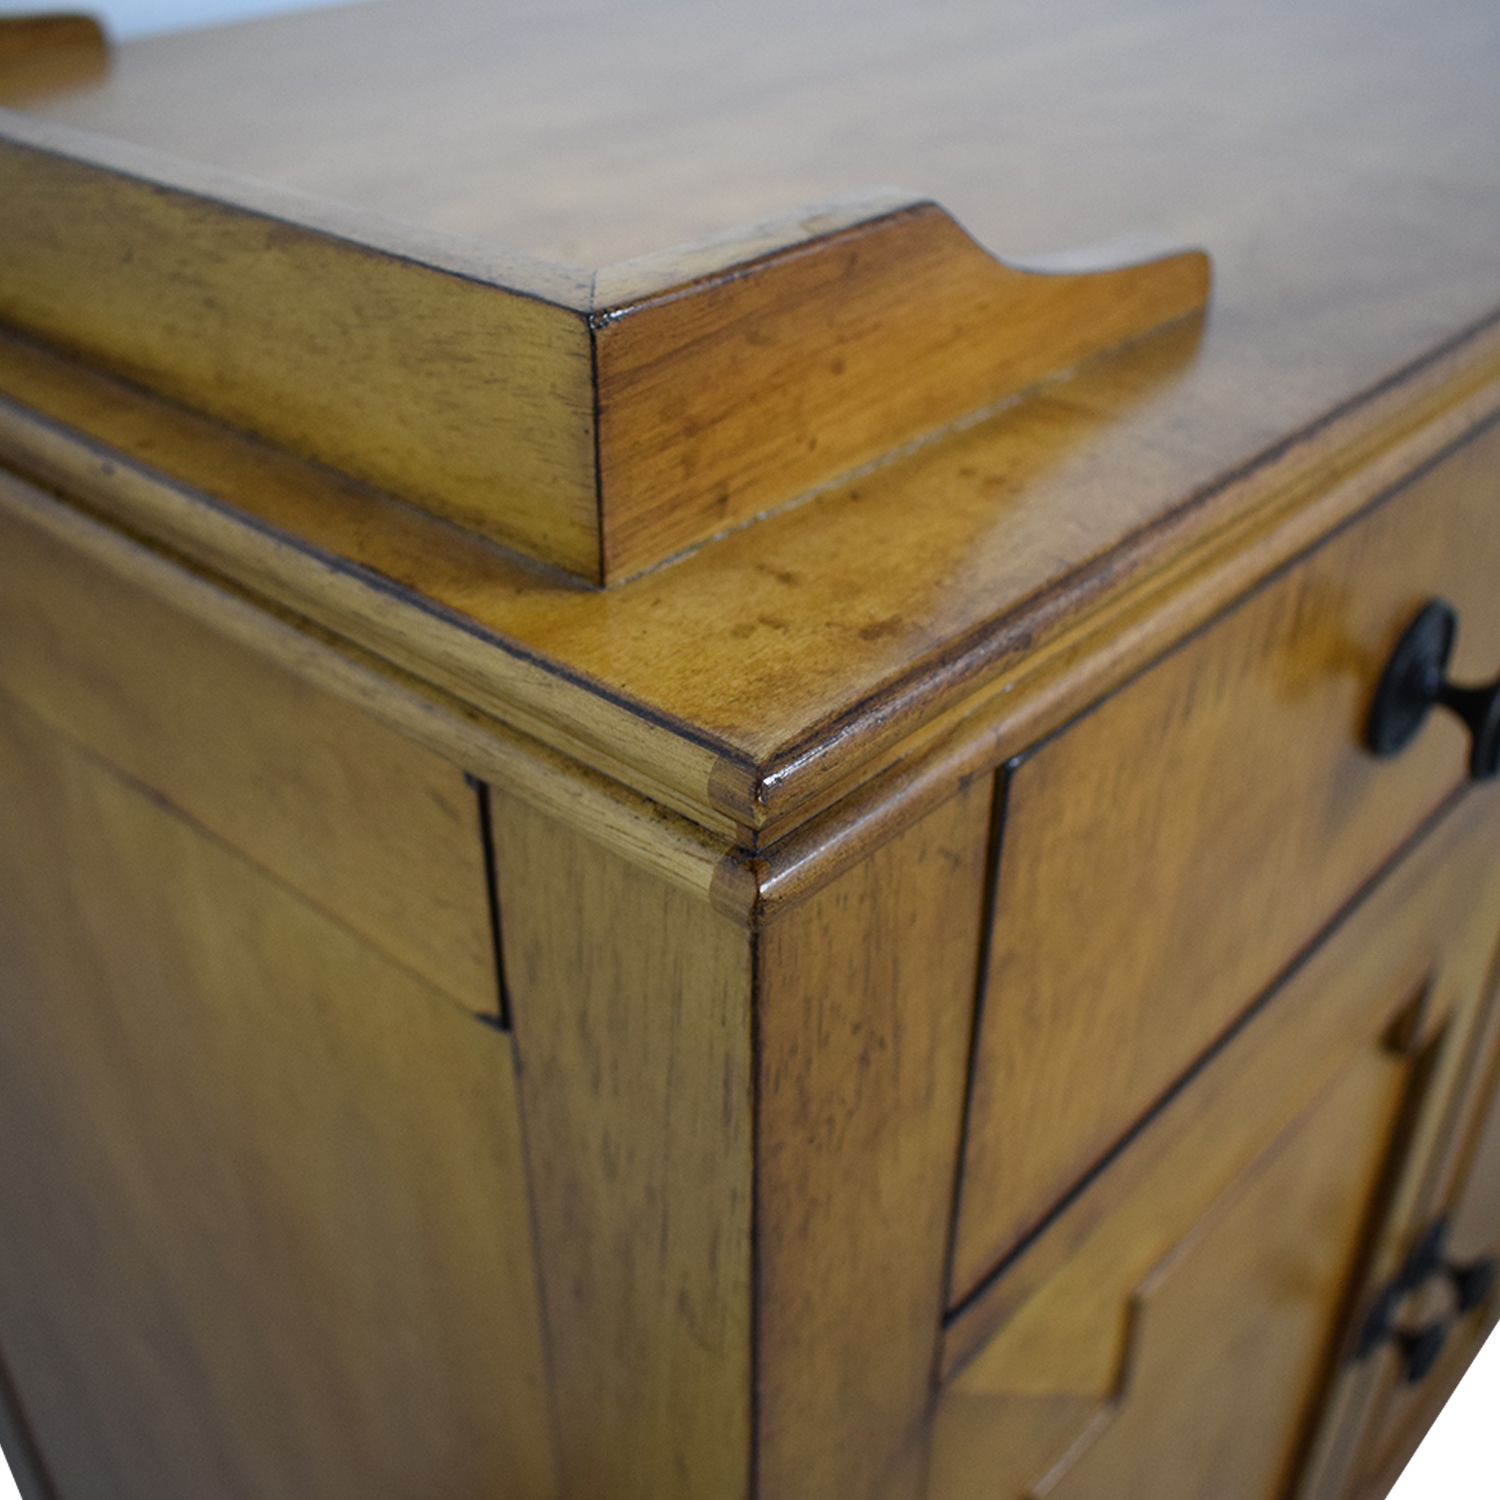 Hooker Hooker Lucy Wood Four-Drawer Sideboard used